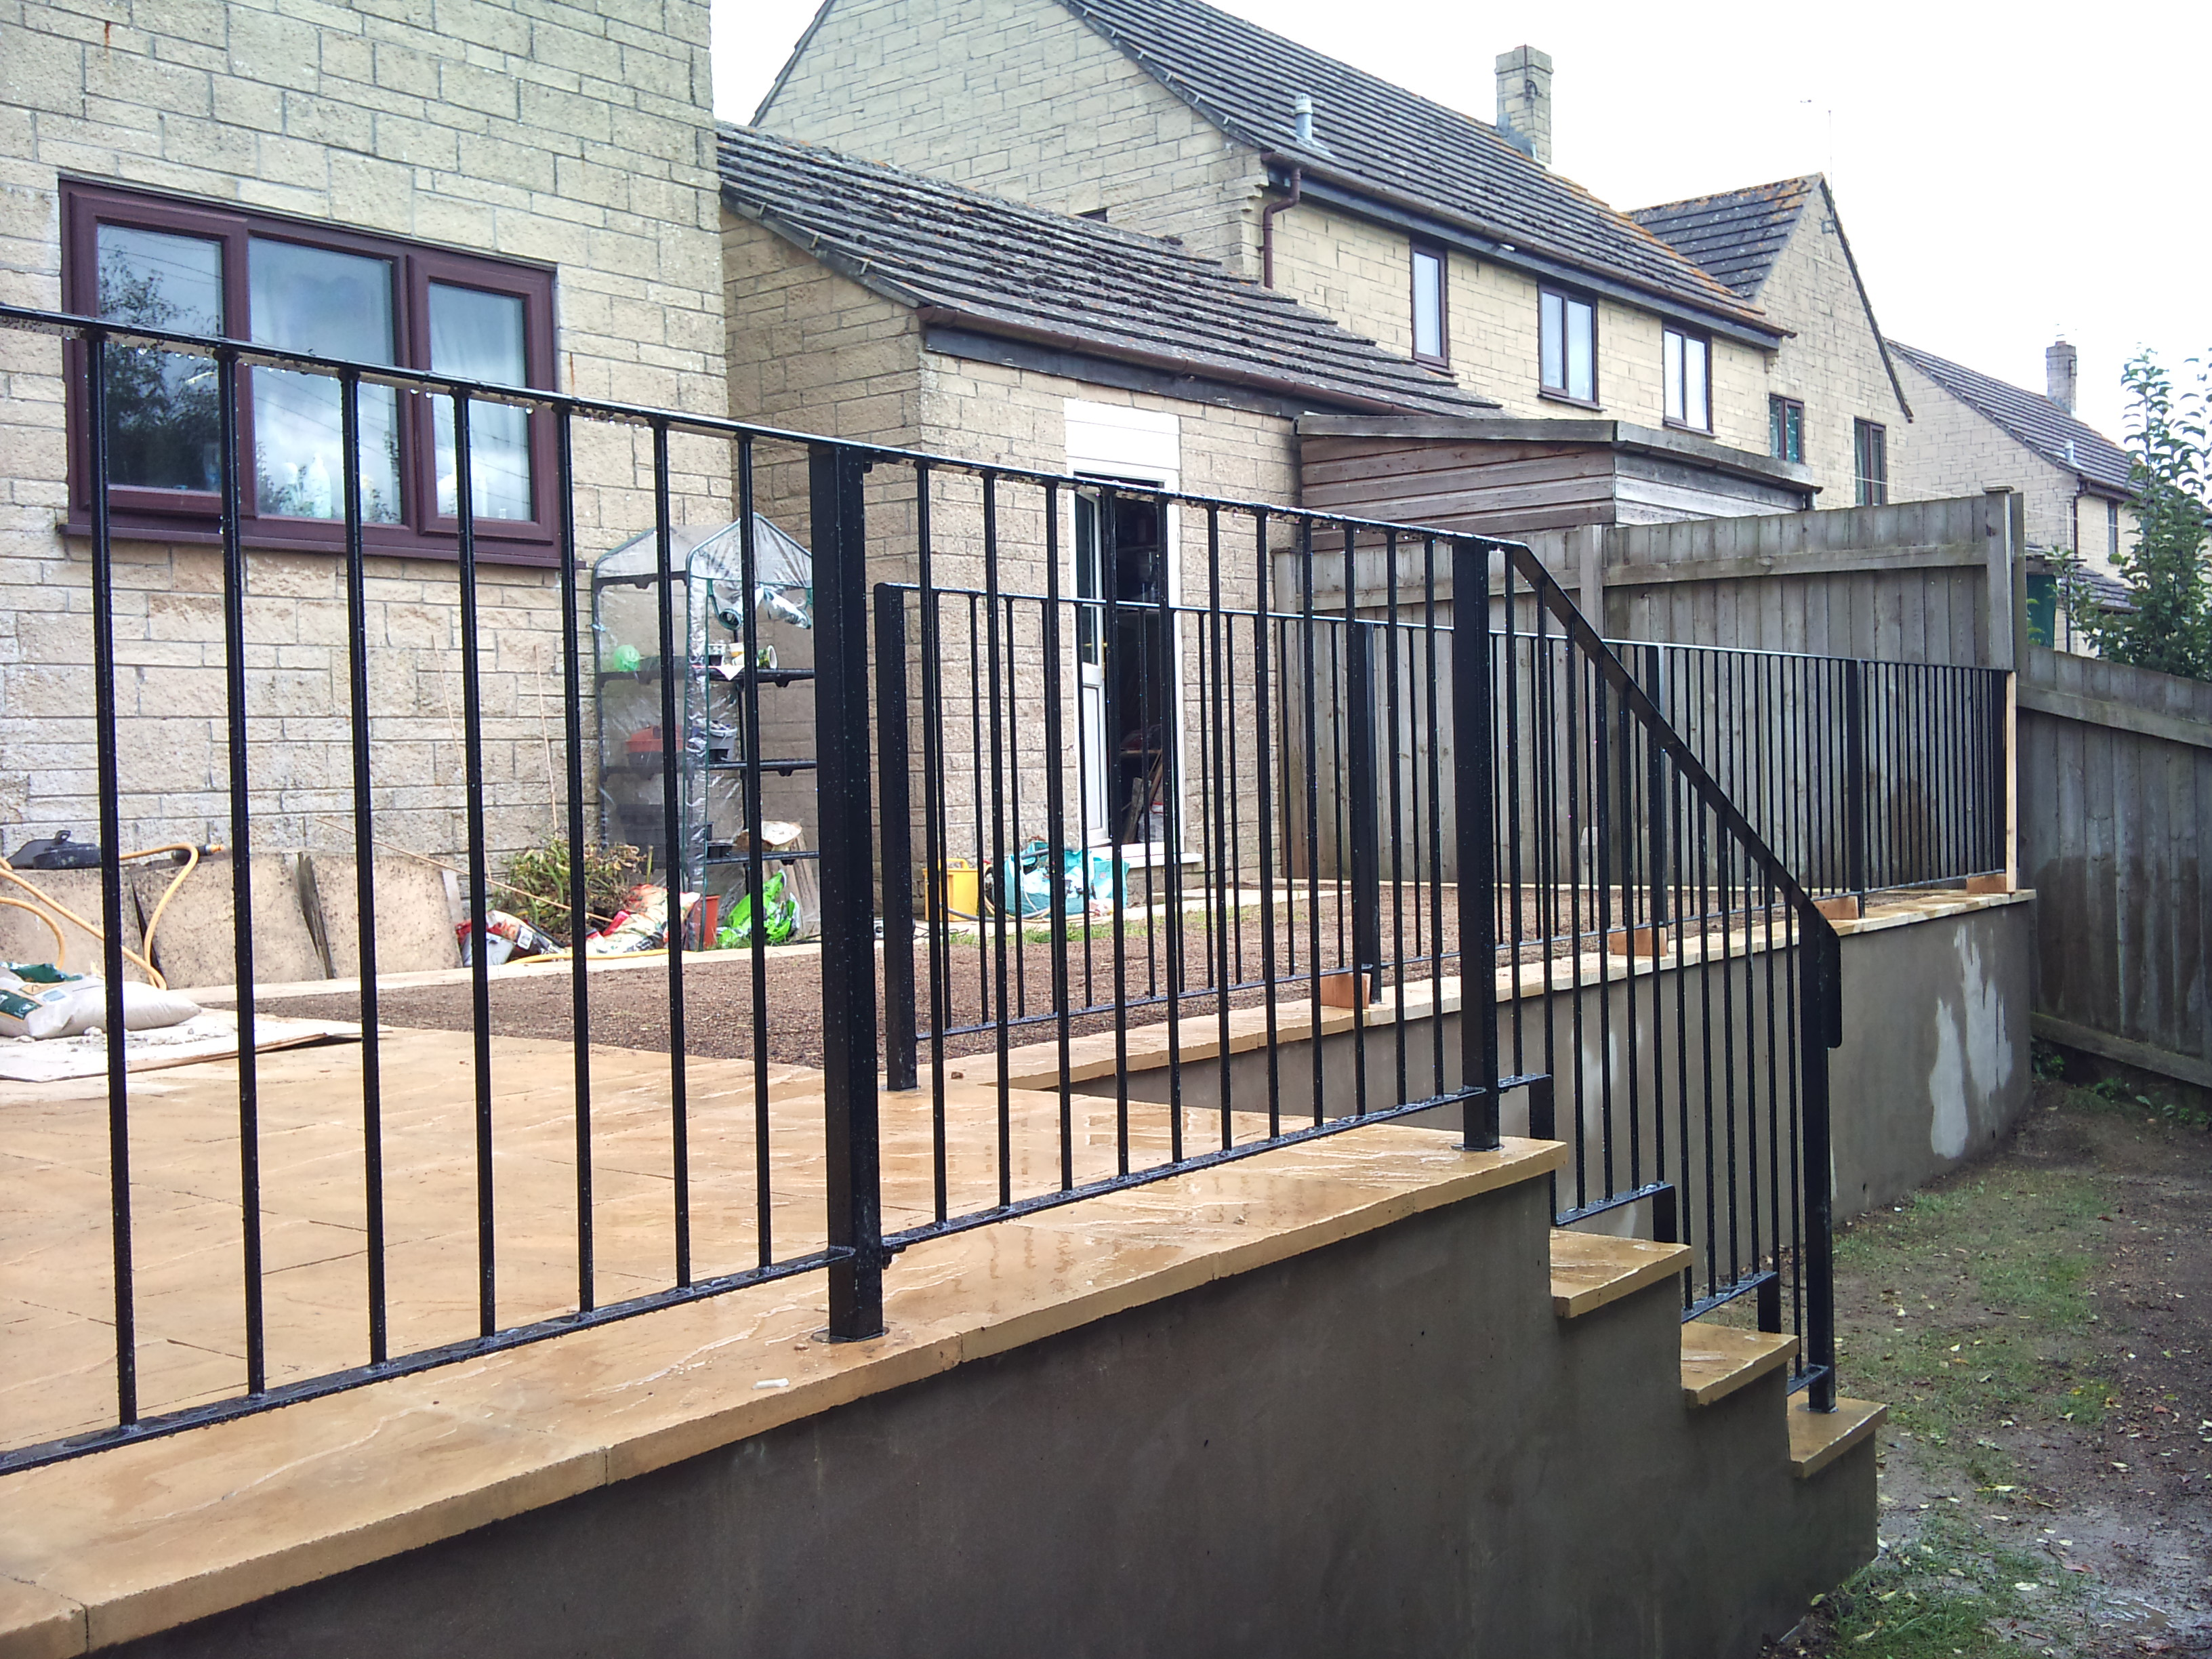 Attractive Railings Down Steps